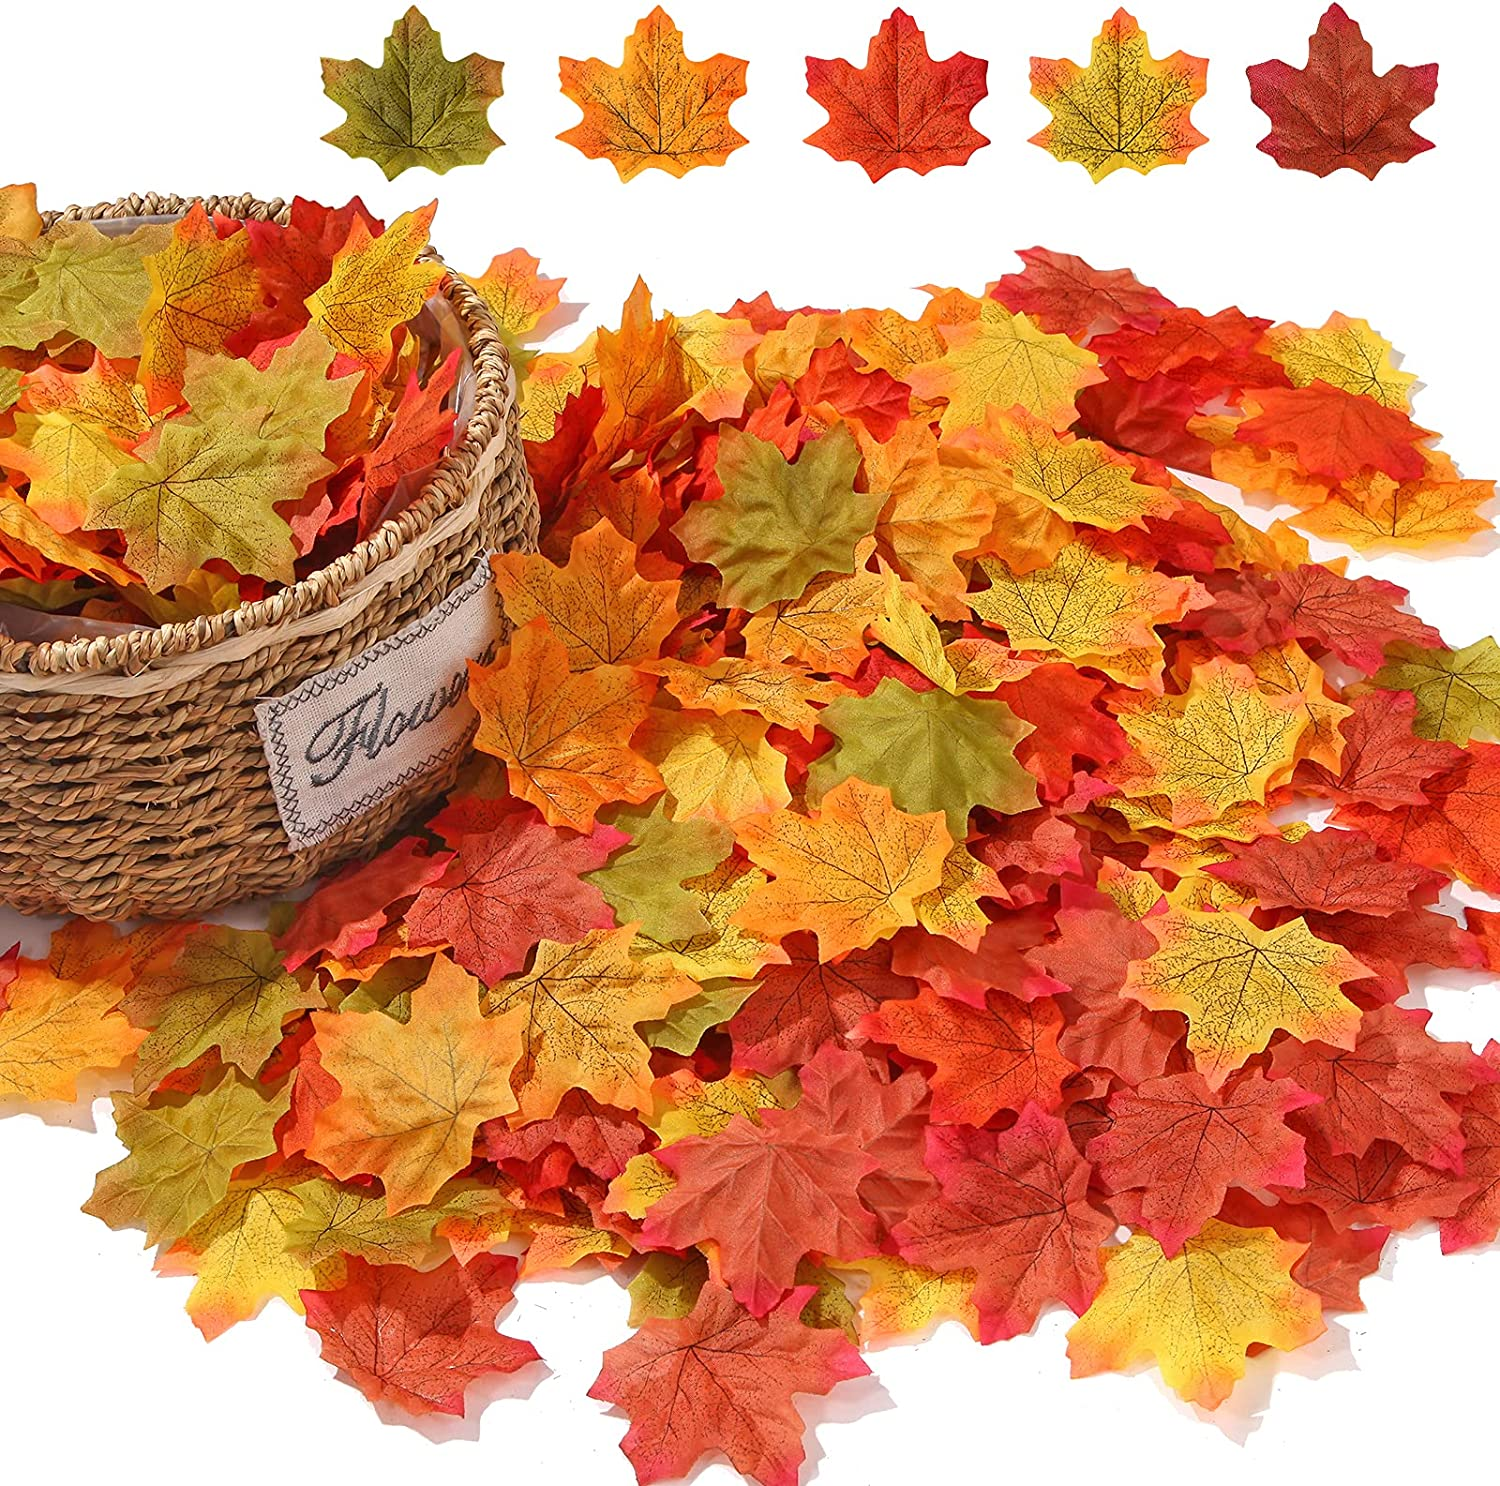 Momkids 500 Pcs Fall Artificial Maple Leaves Fake Autumn Leaf for Home Bedroom Kitchen Restaurant Centerpieces Festival Party DIY Decorative(5 Colored Mixed)